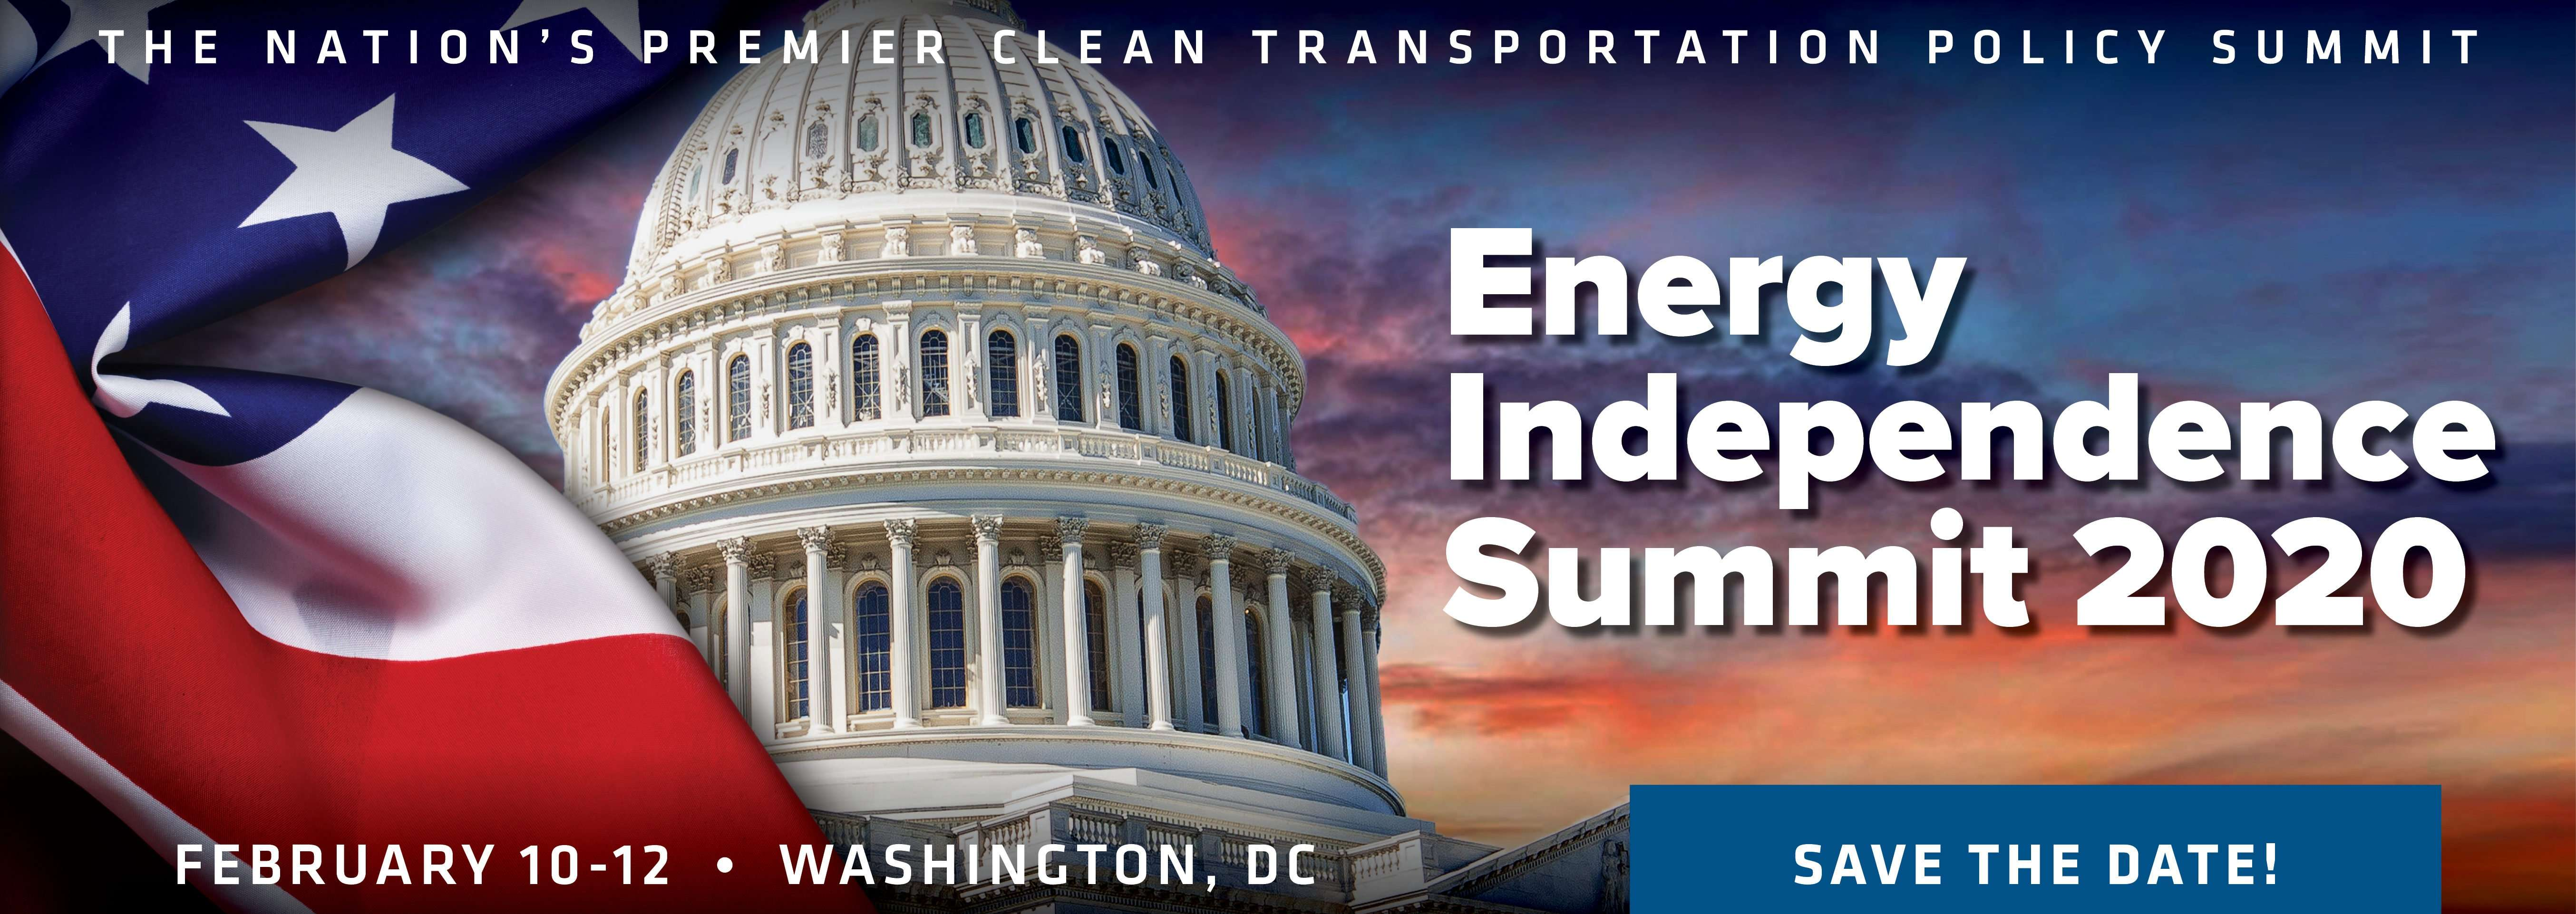 energy independence summit